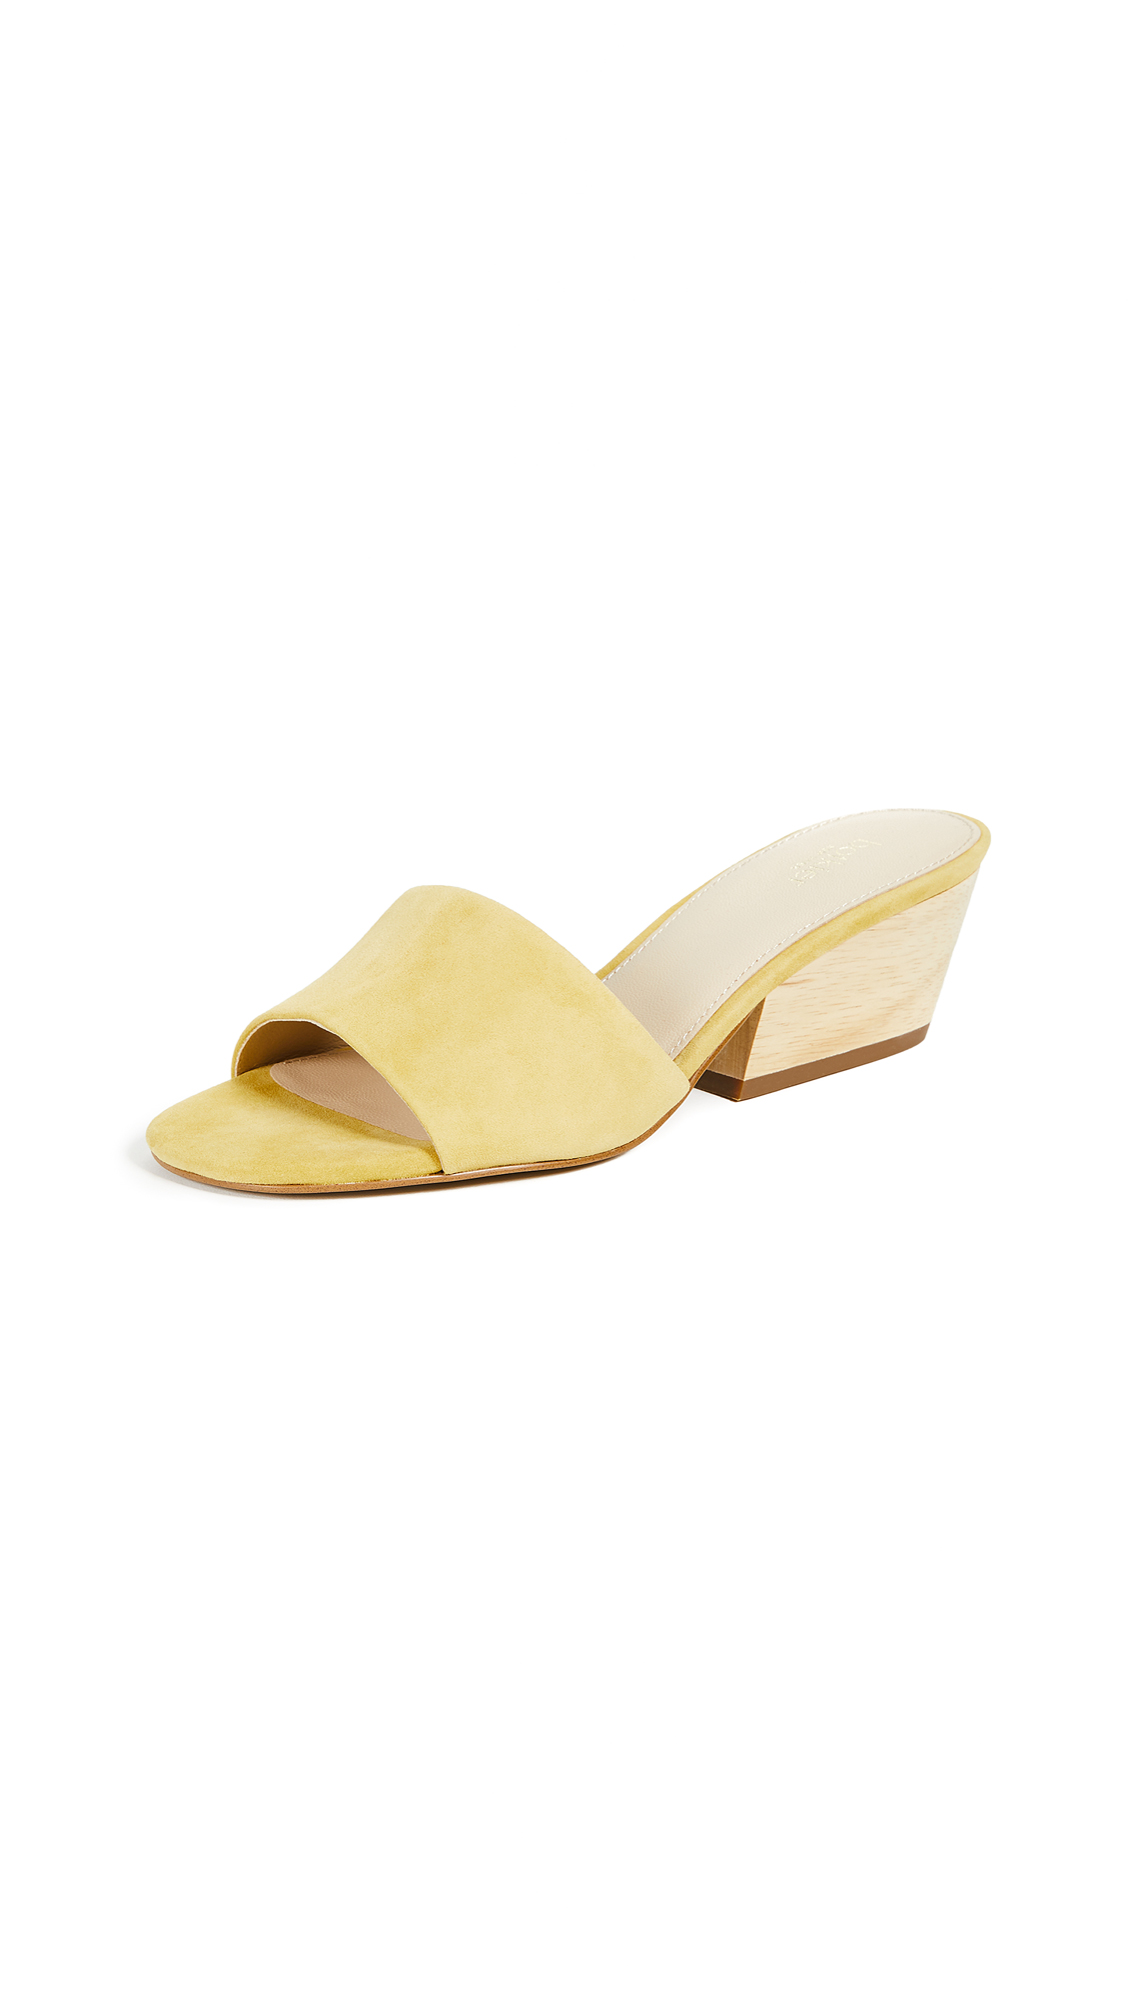 Botkier Carlie Block Heel Slides - Pineapple